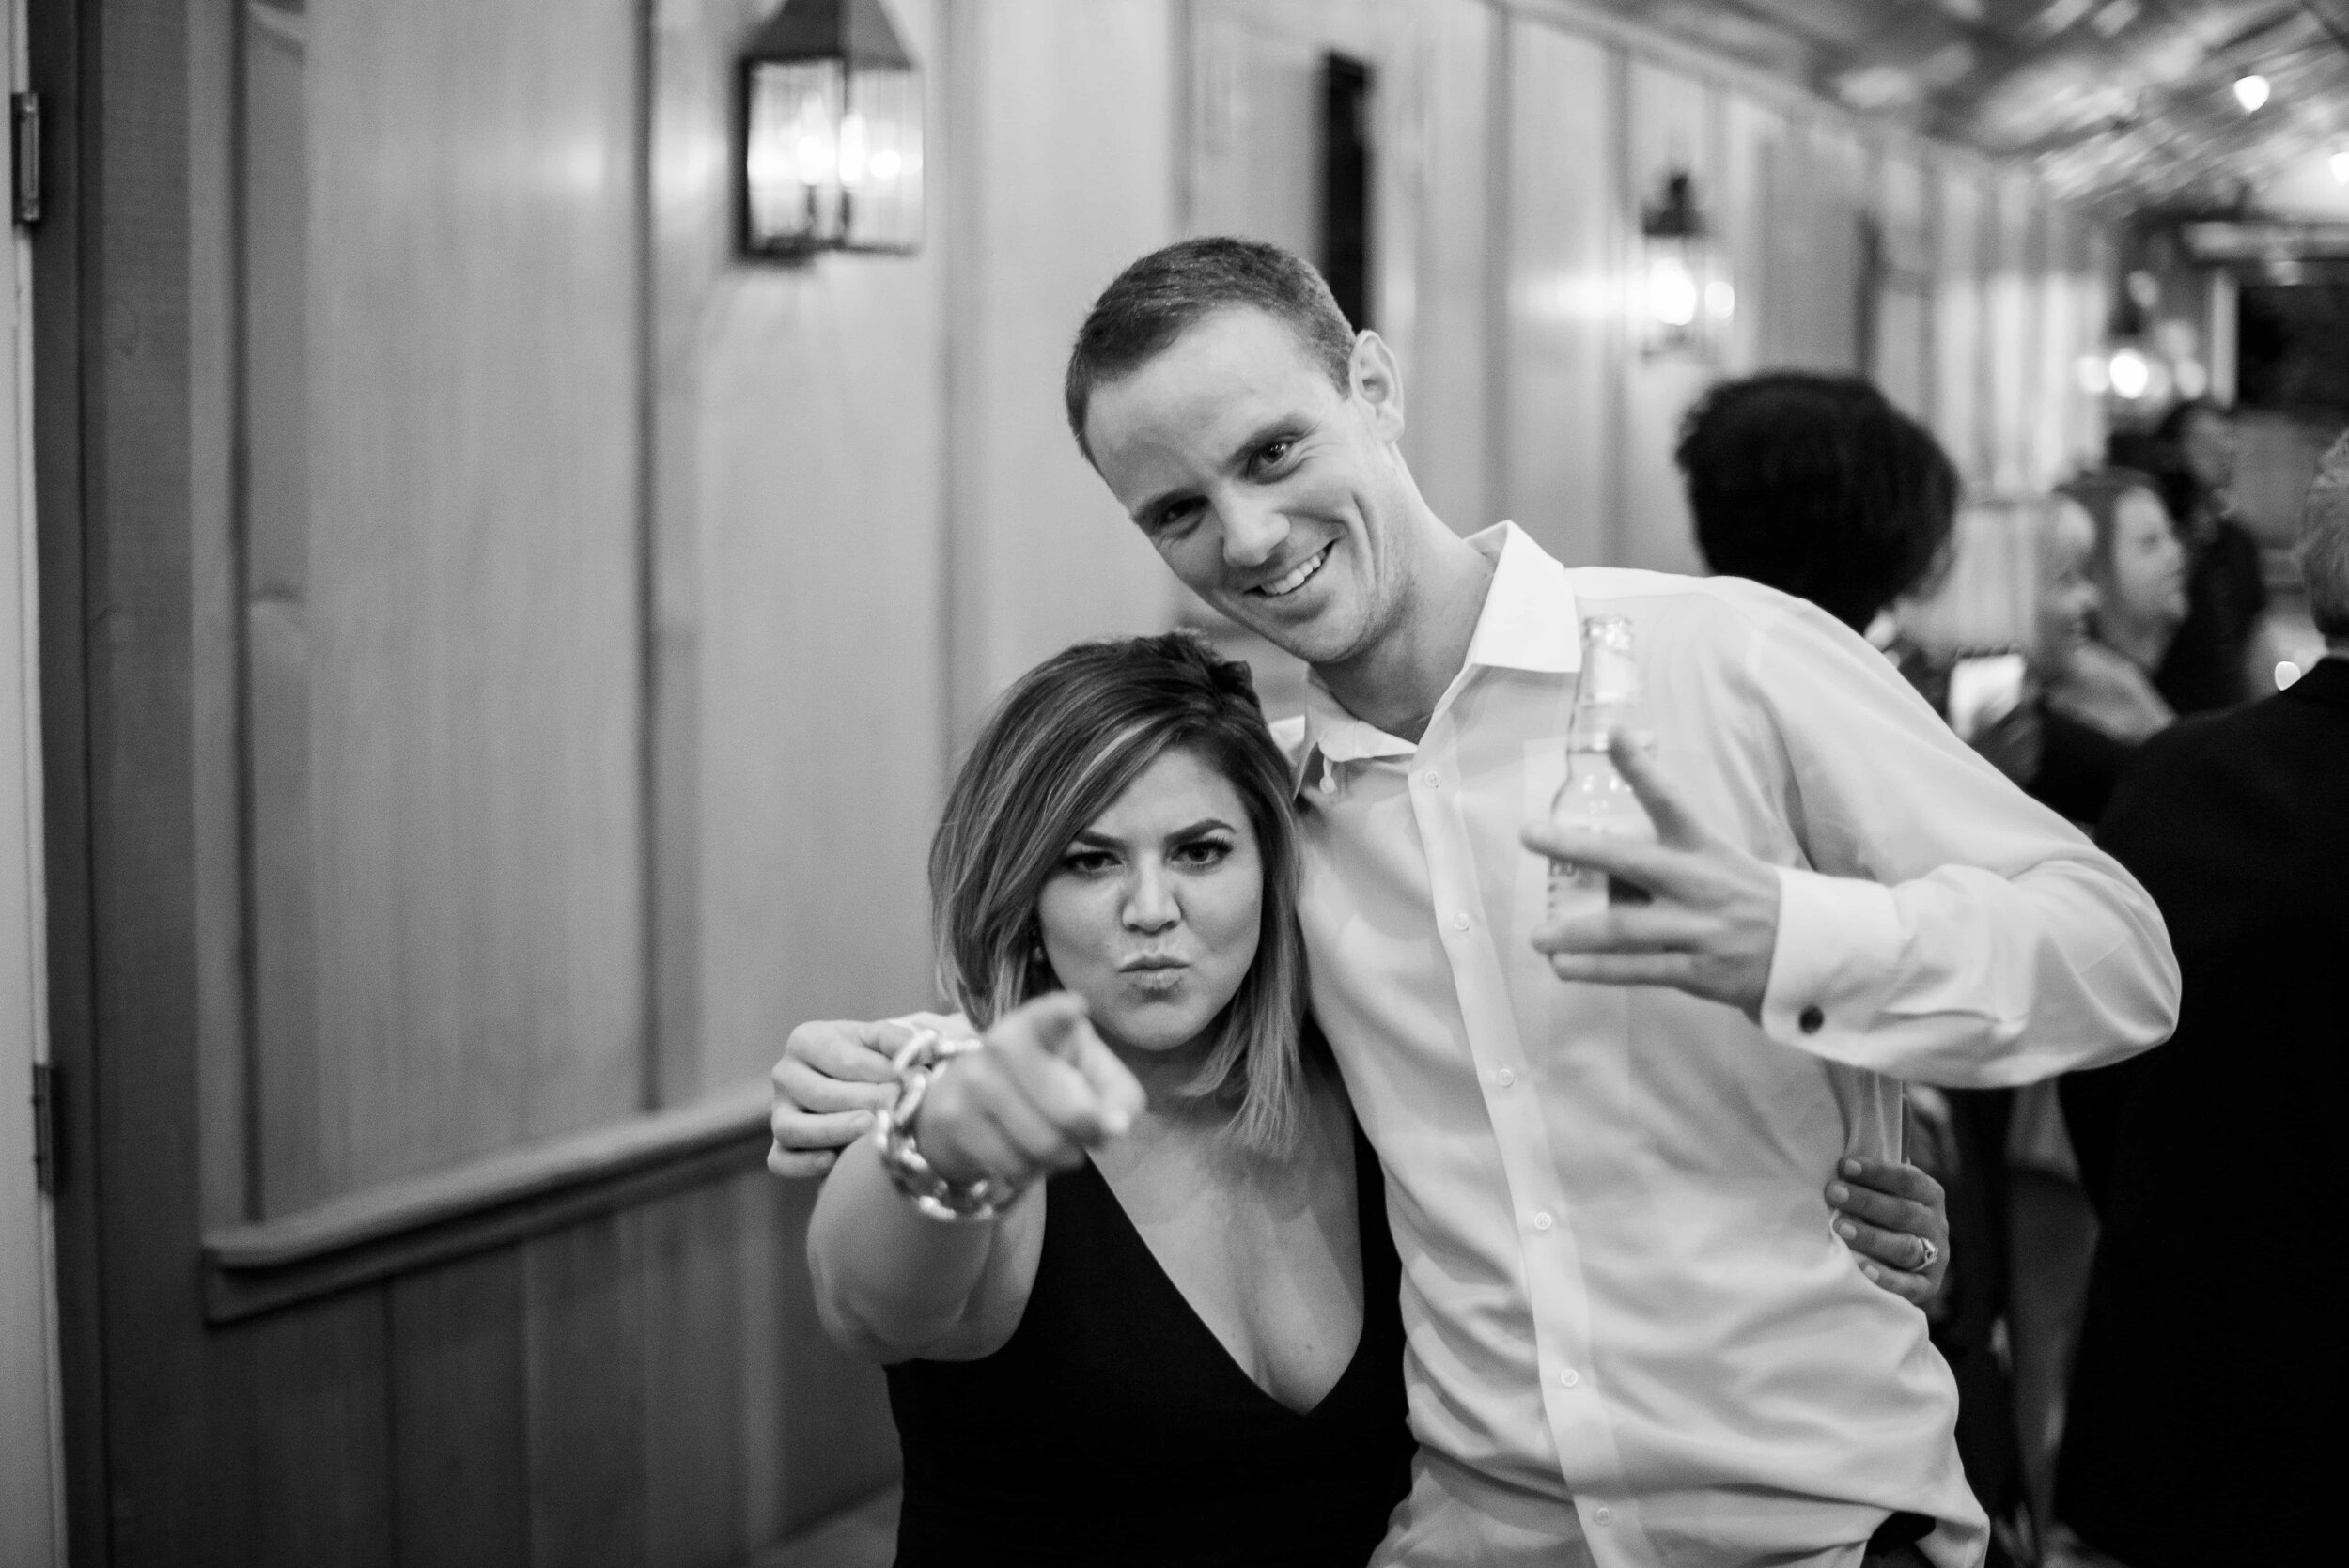 Wedding guests being silly